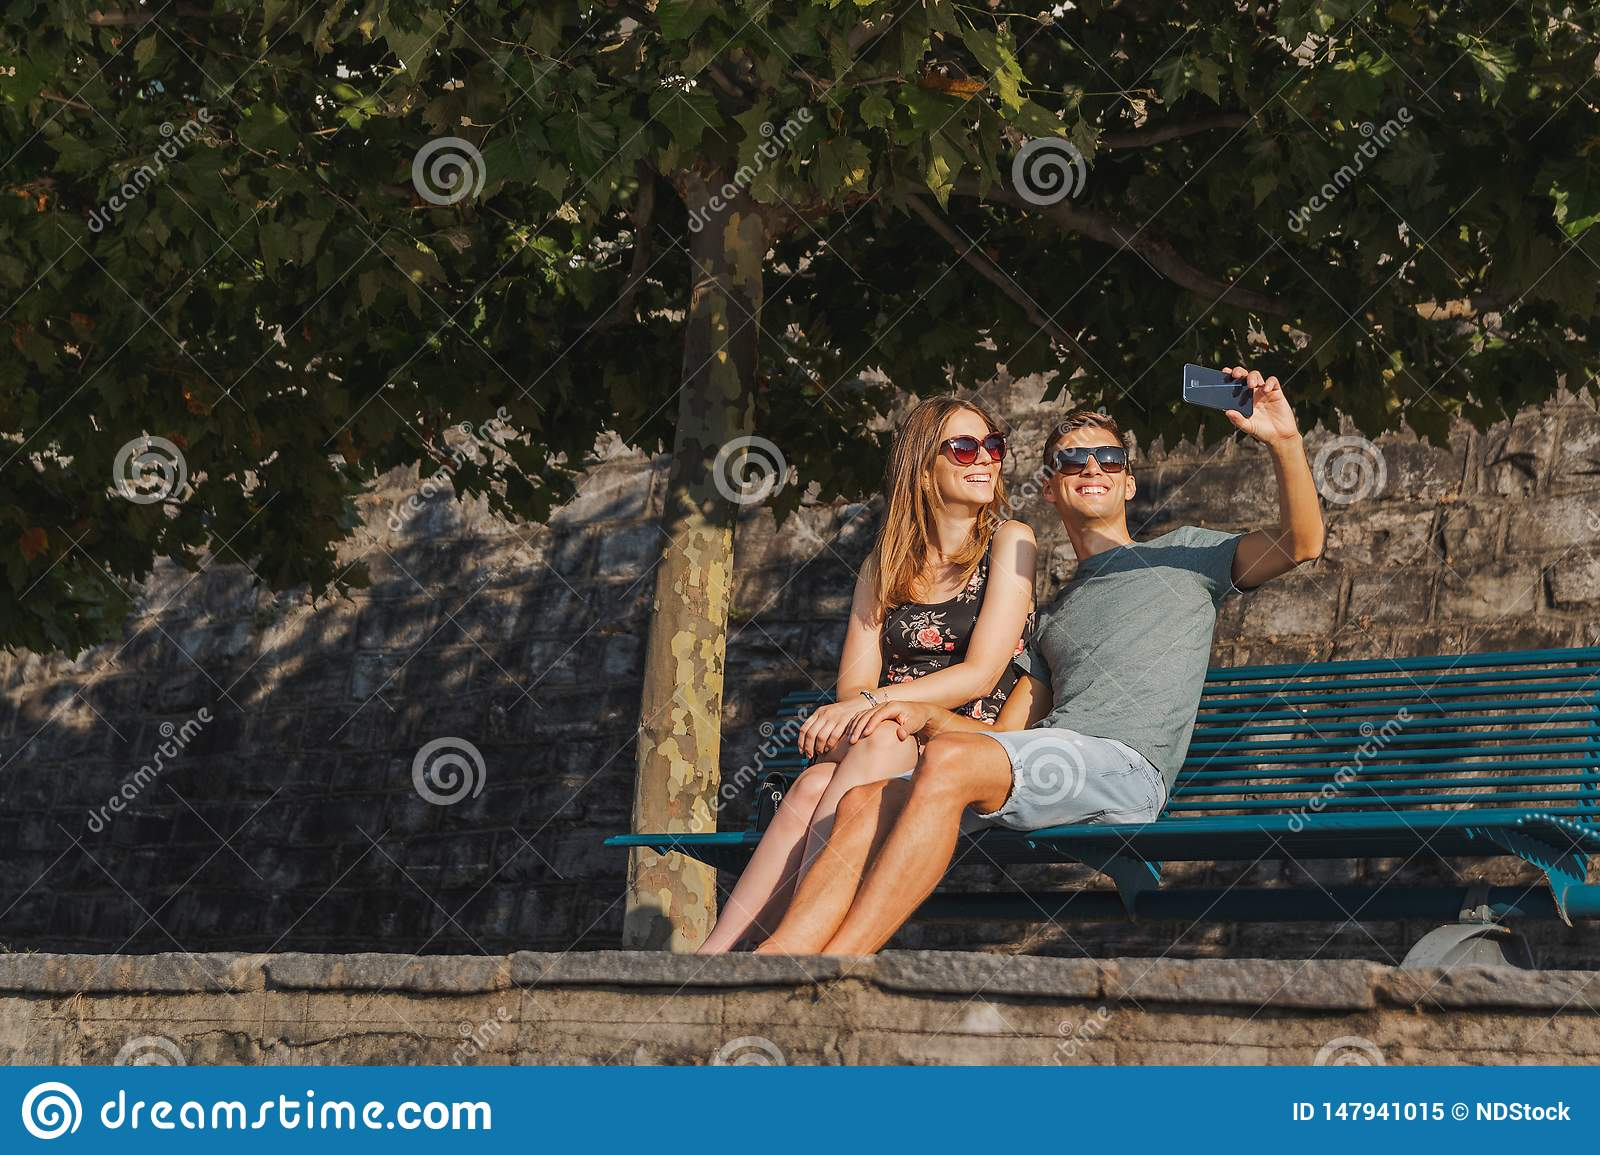 Young couple in love seated on a bench taking a selfie and relaxing during a sunny day